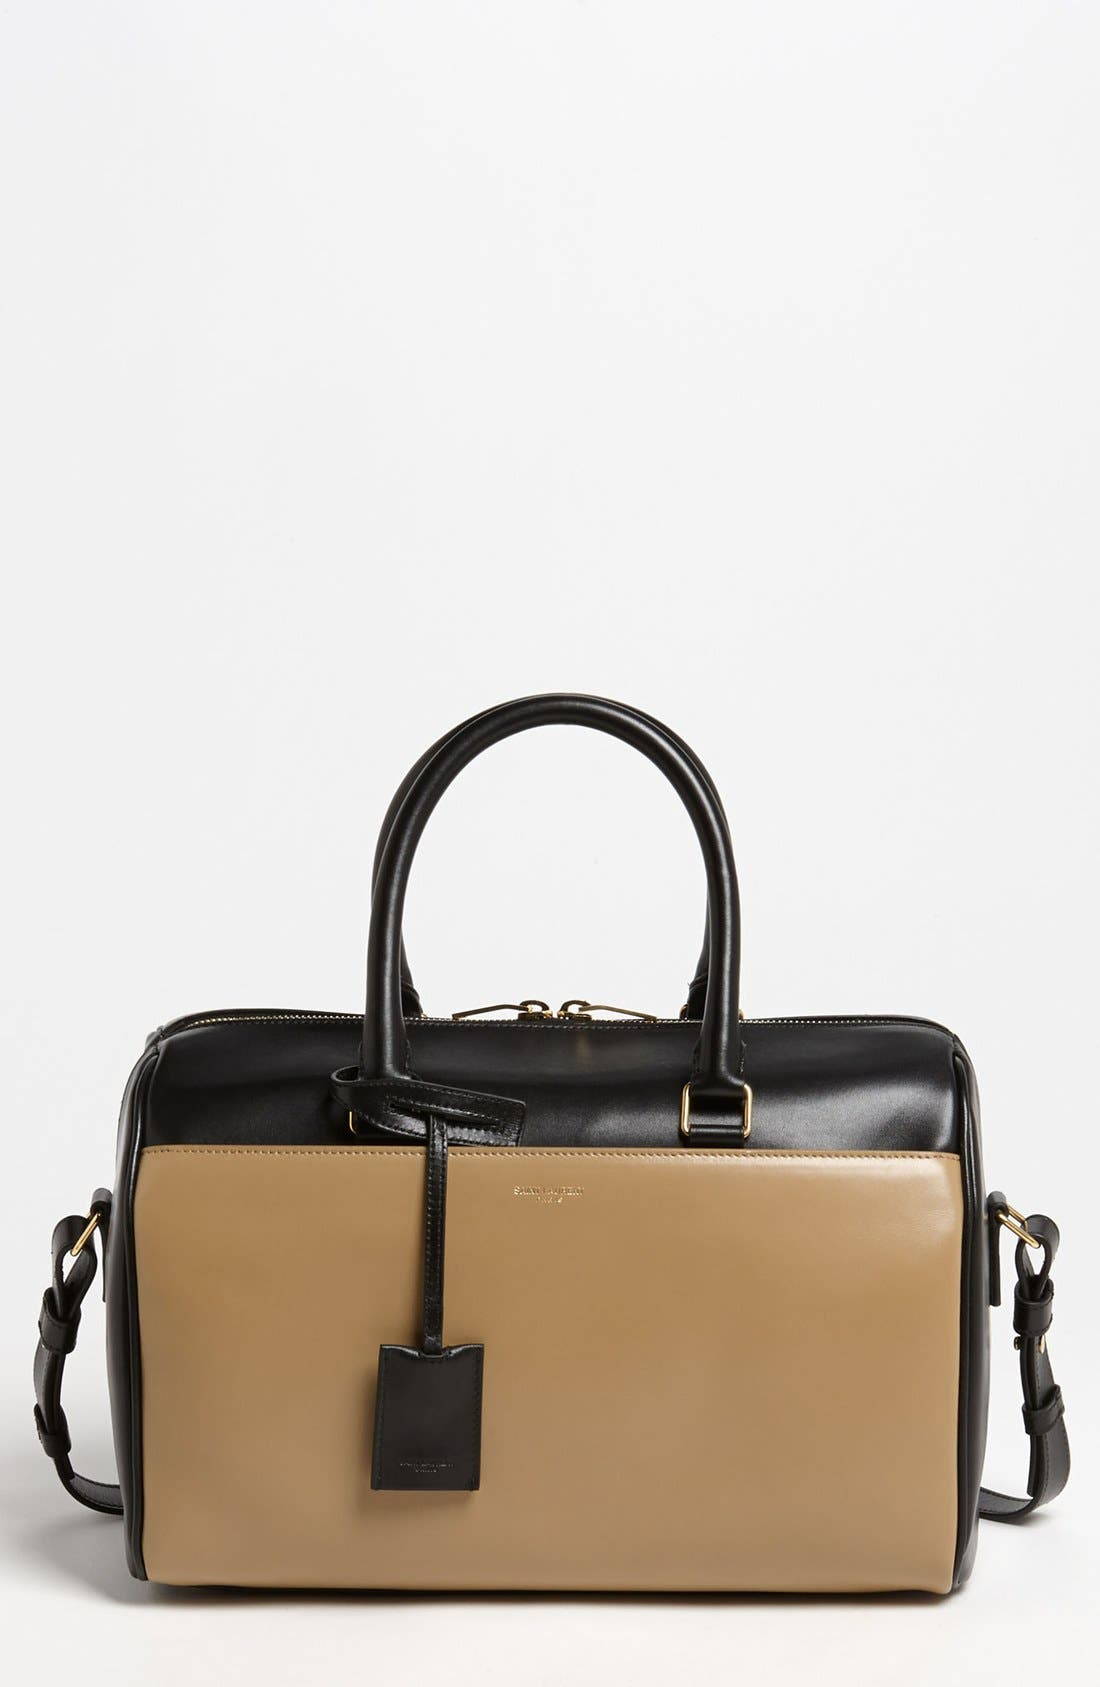 Main Image - Saint Laurent 'Duffel 6' Leather Satchel